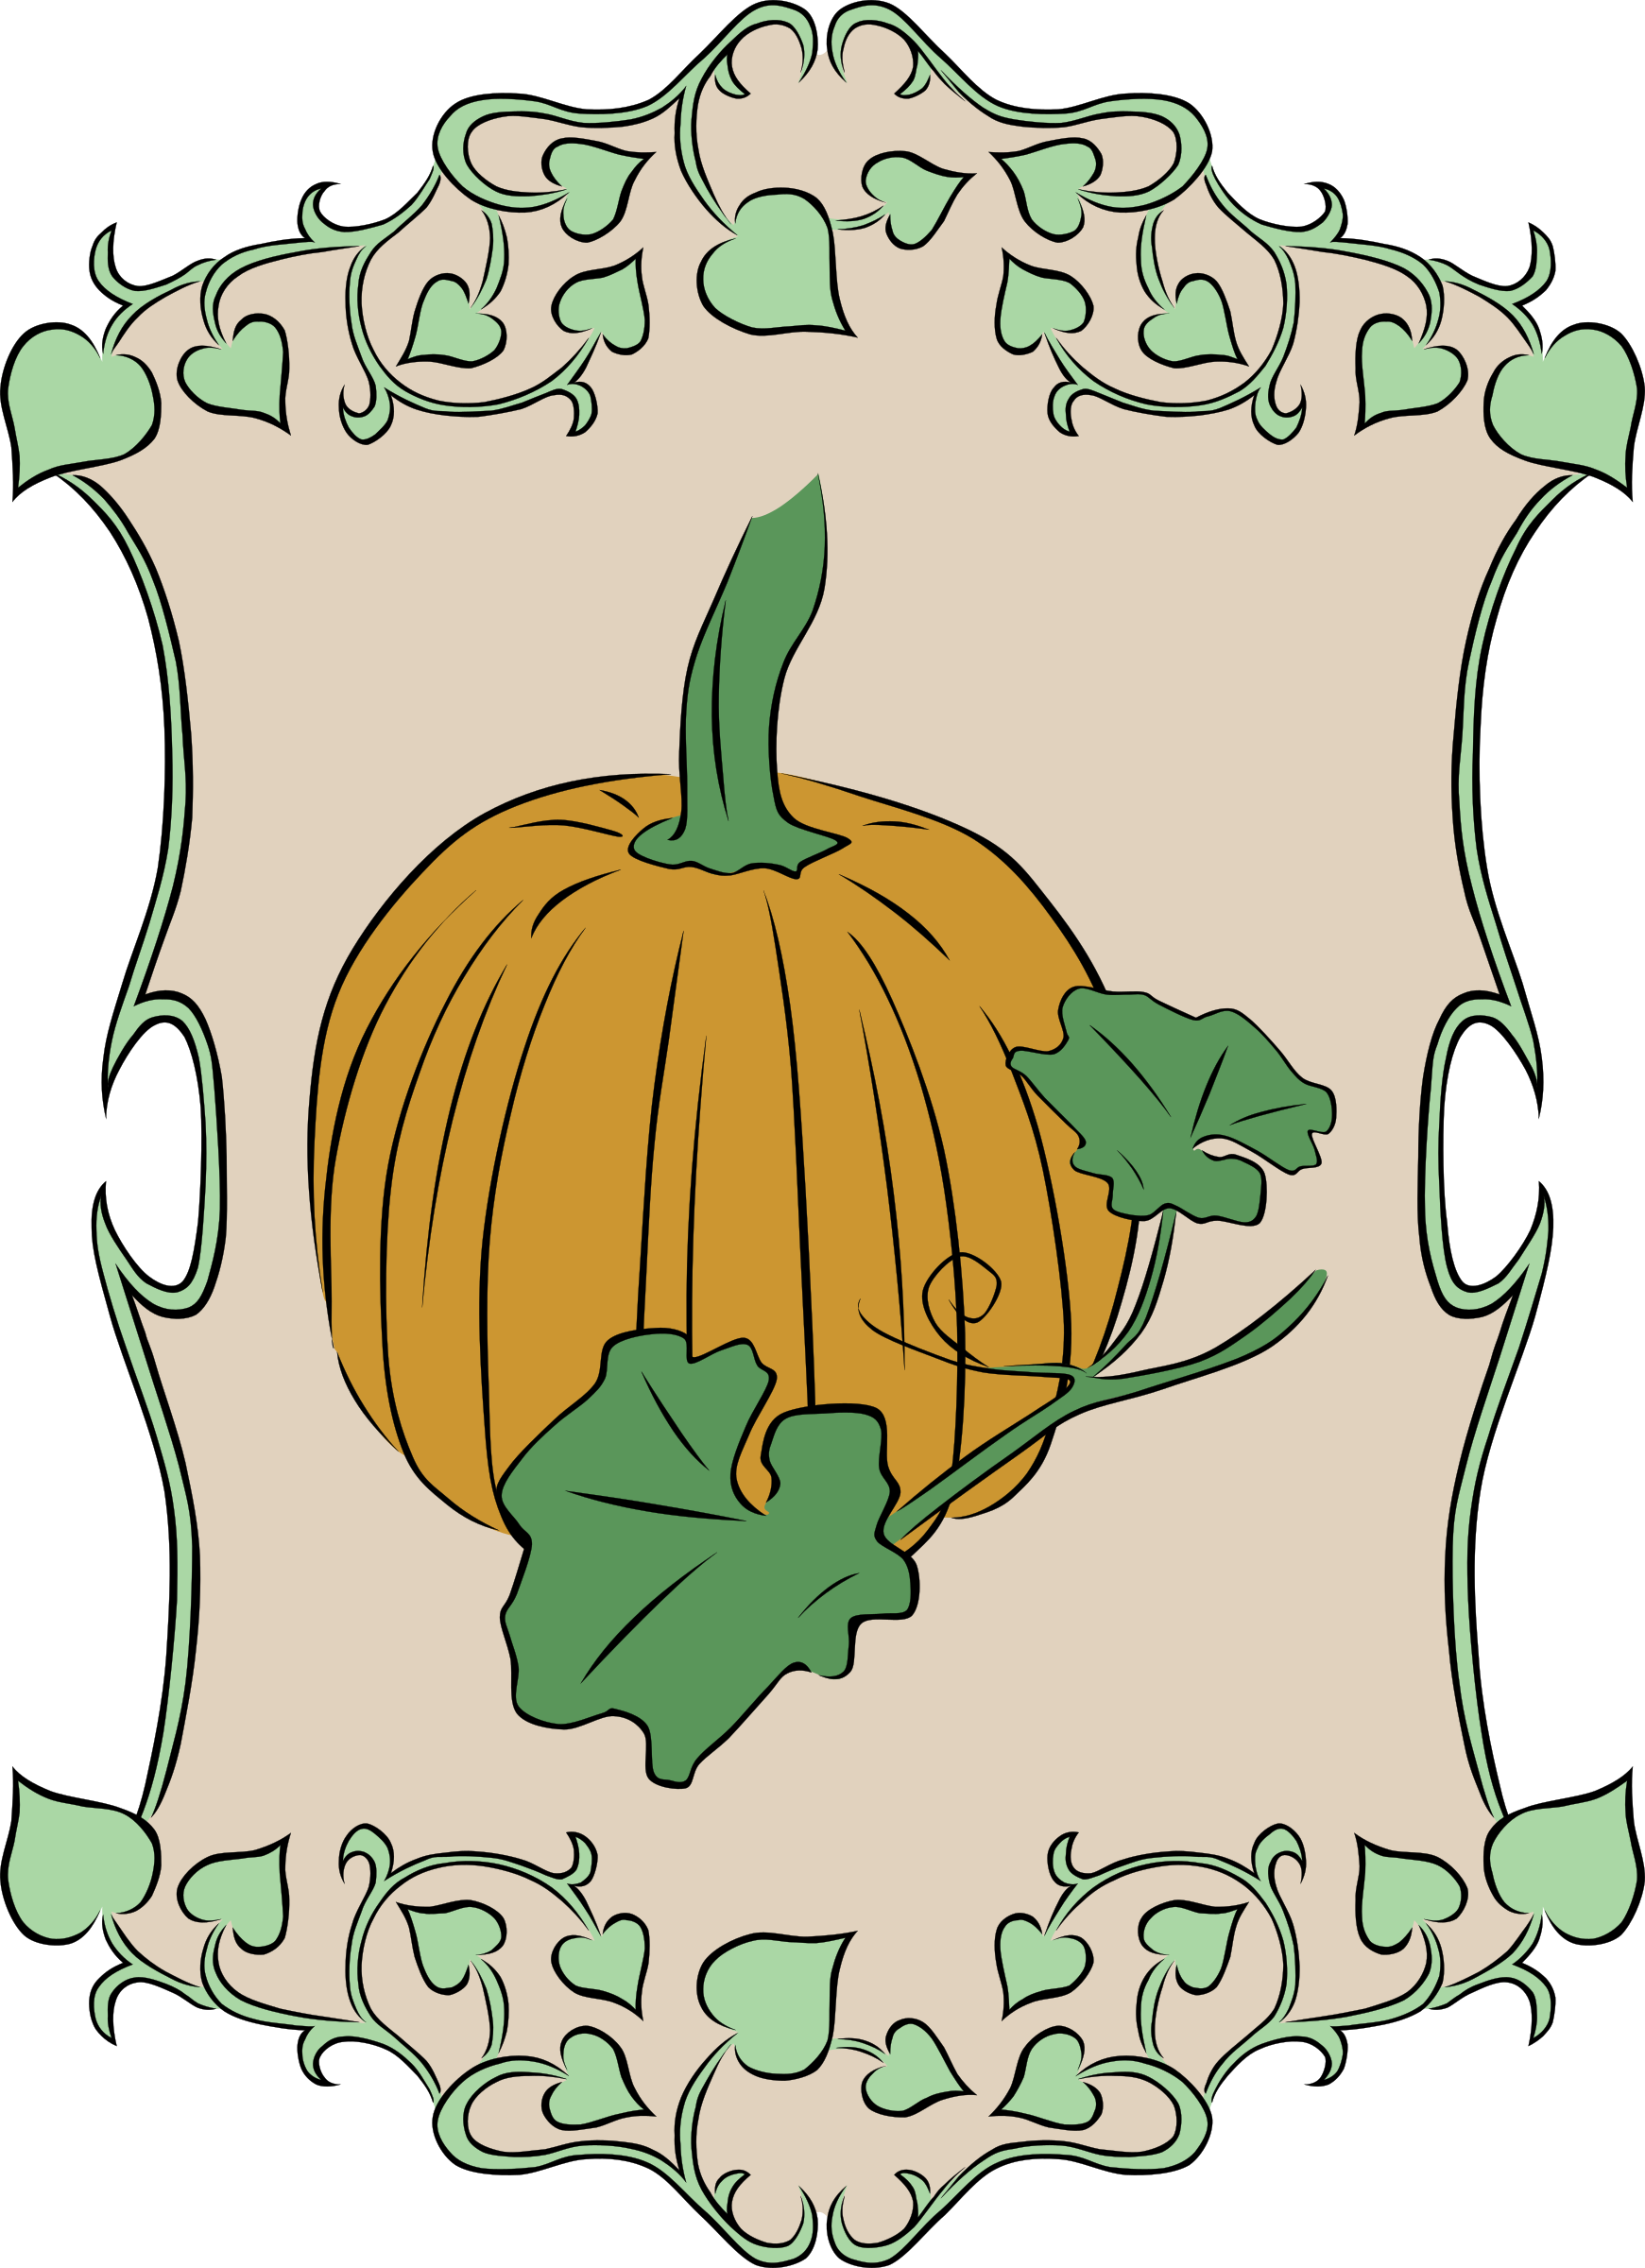 Garden sign pumpkin icons. Gardening clipart crop production